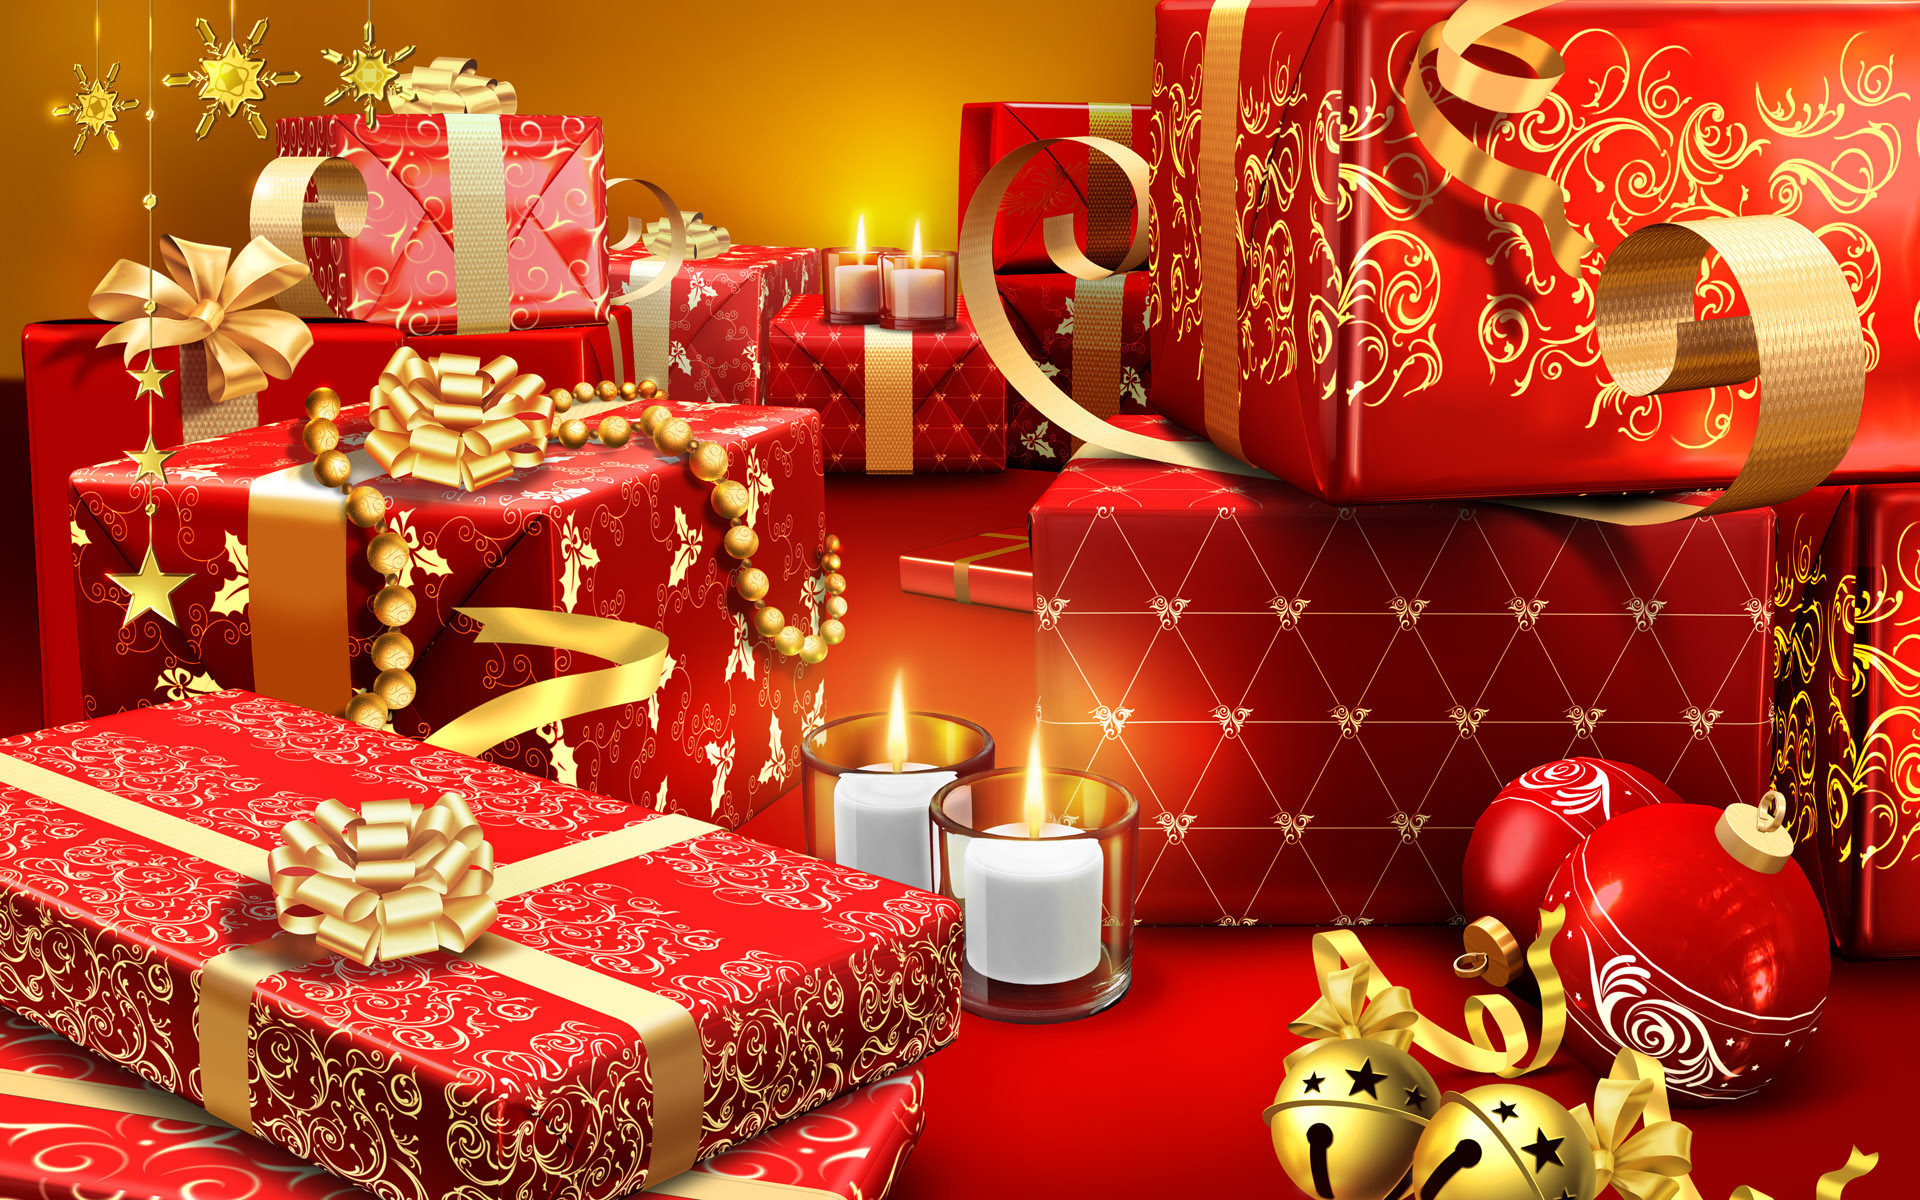 Res: 1920x1200, Holiday - Christmas Gift Candle Wallpaper